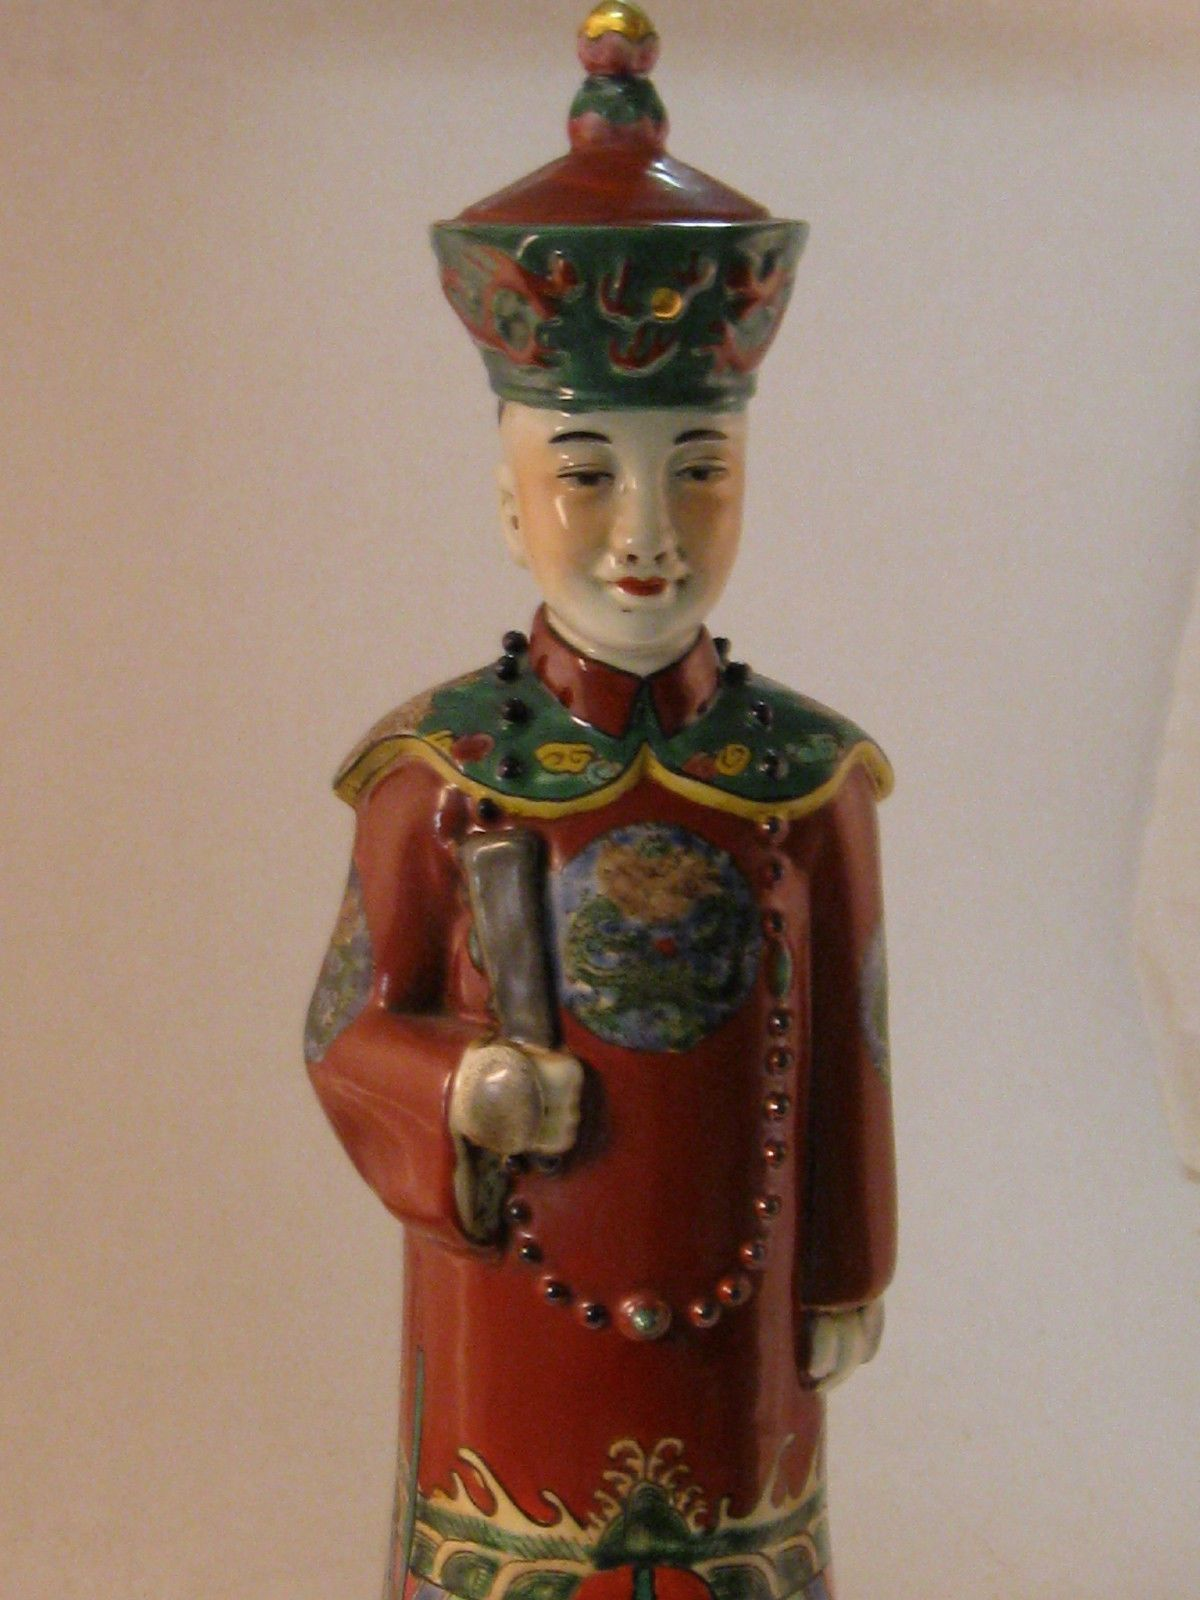 270mm Collectible Handmade Vintage porcelain Statue Qing Dynasty Emperor